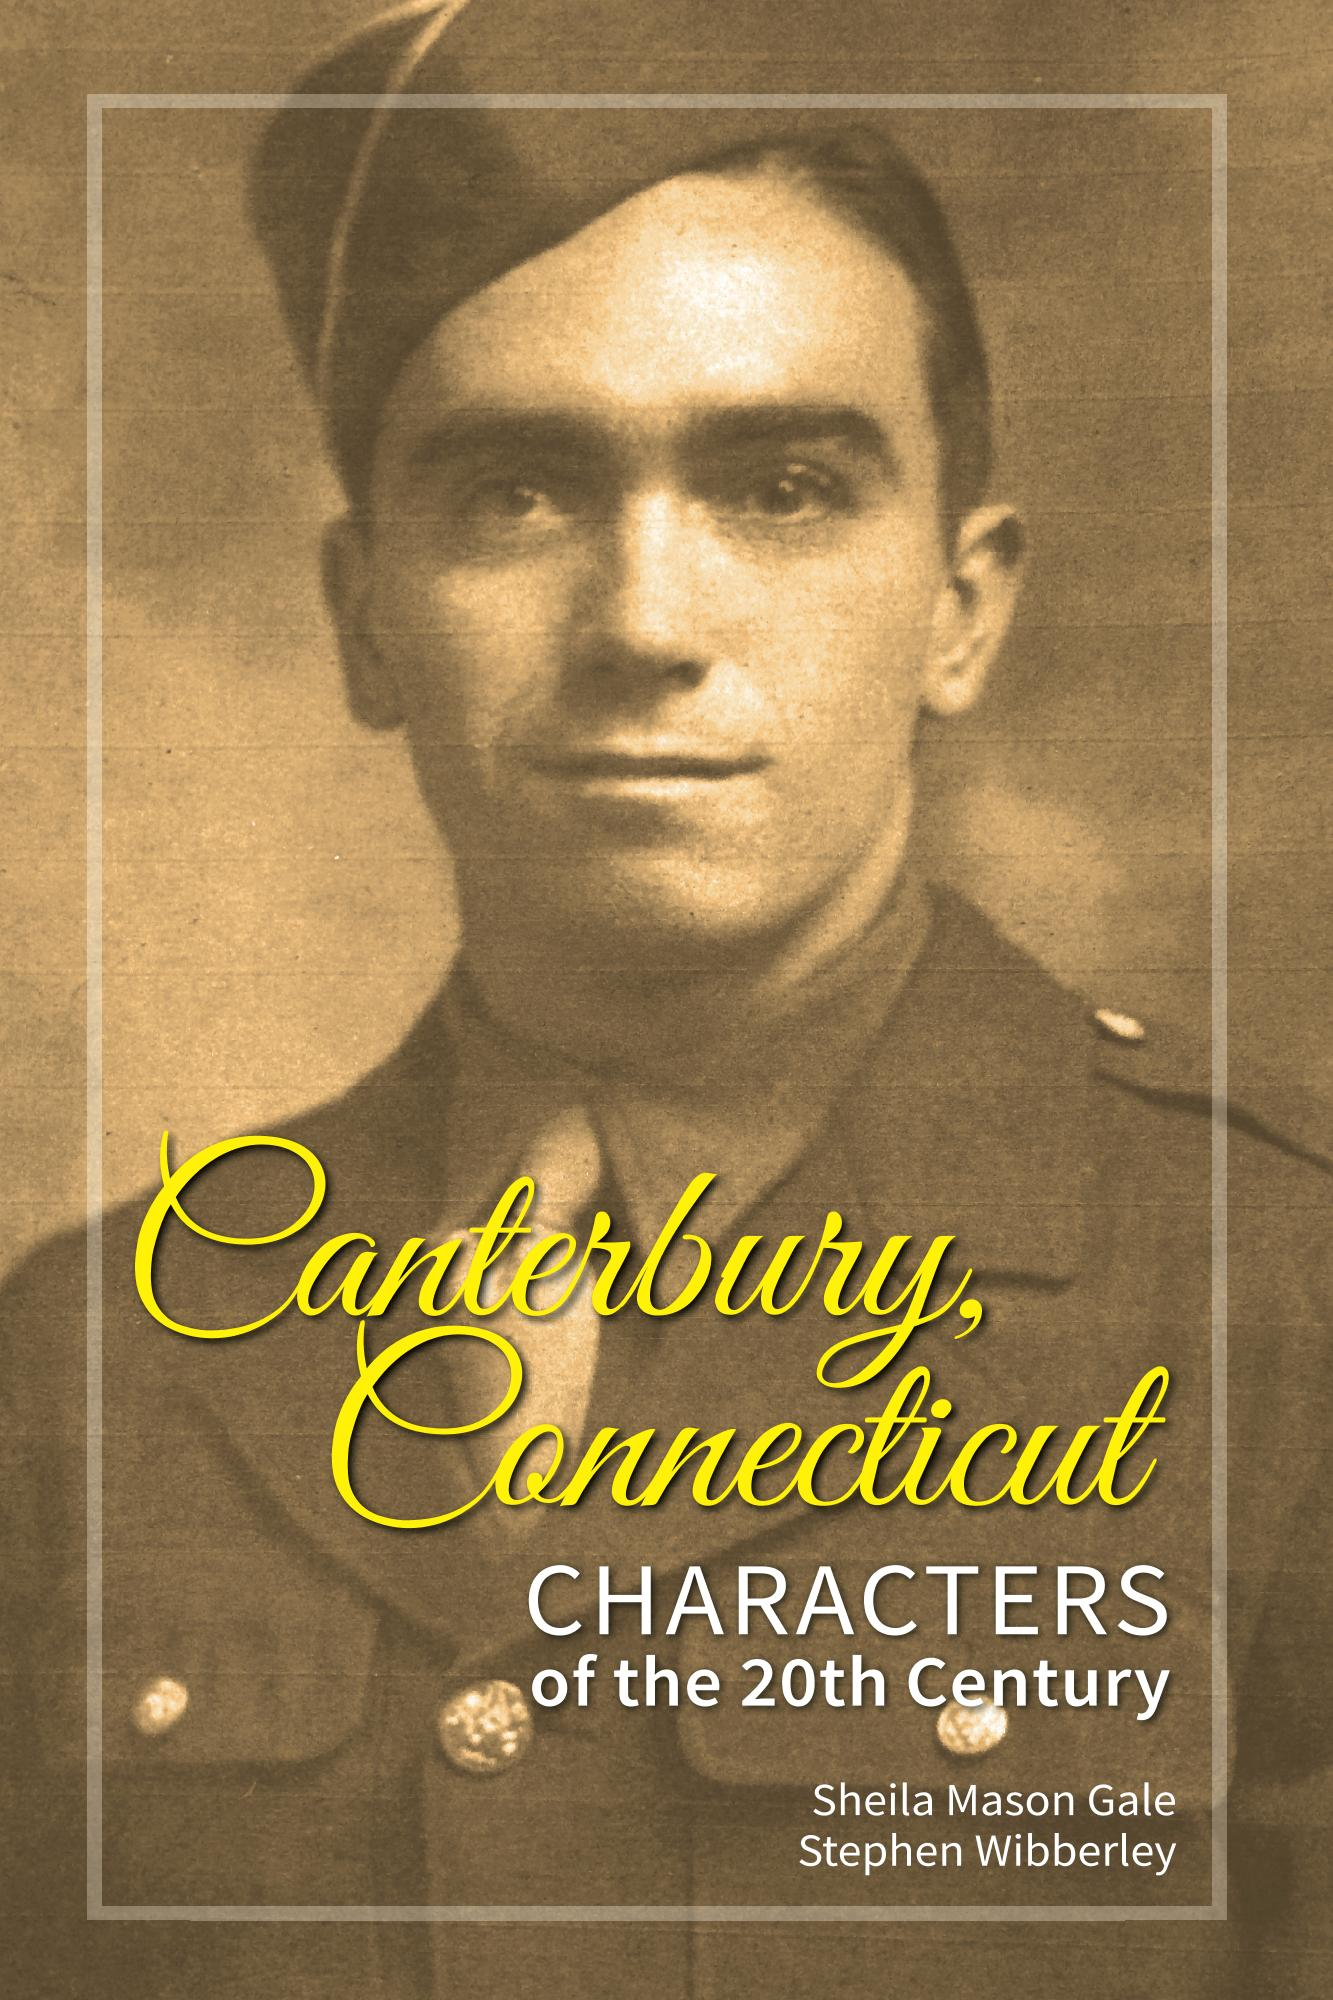 Canterbury, Connecticut Characters of the 20th Century